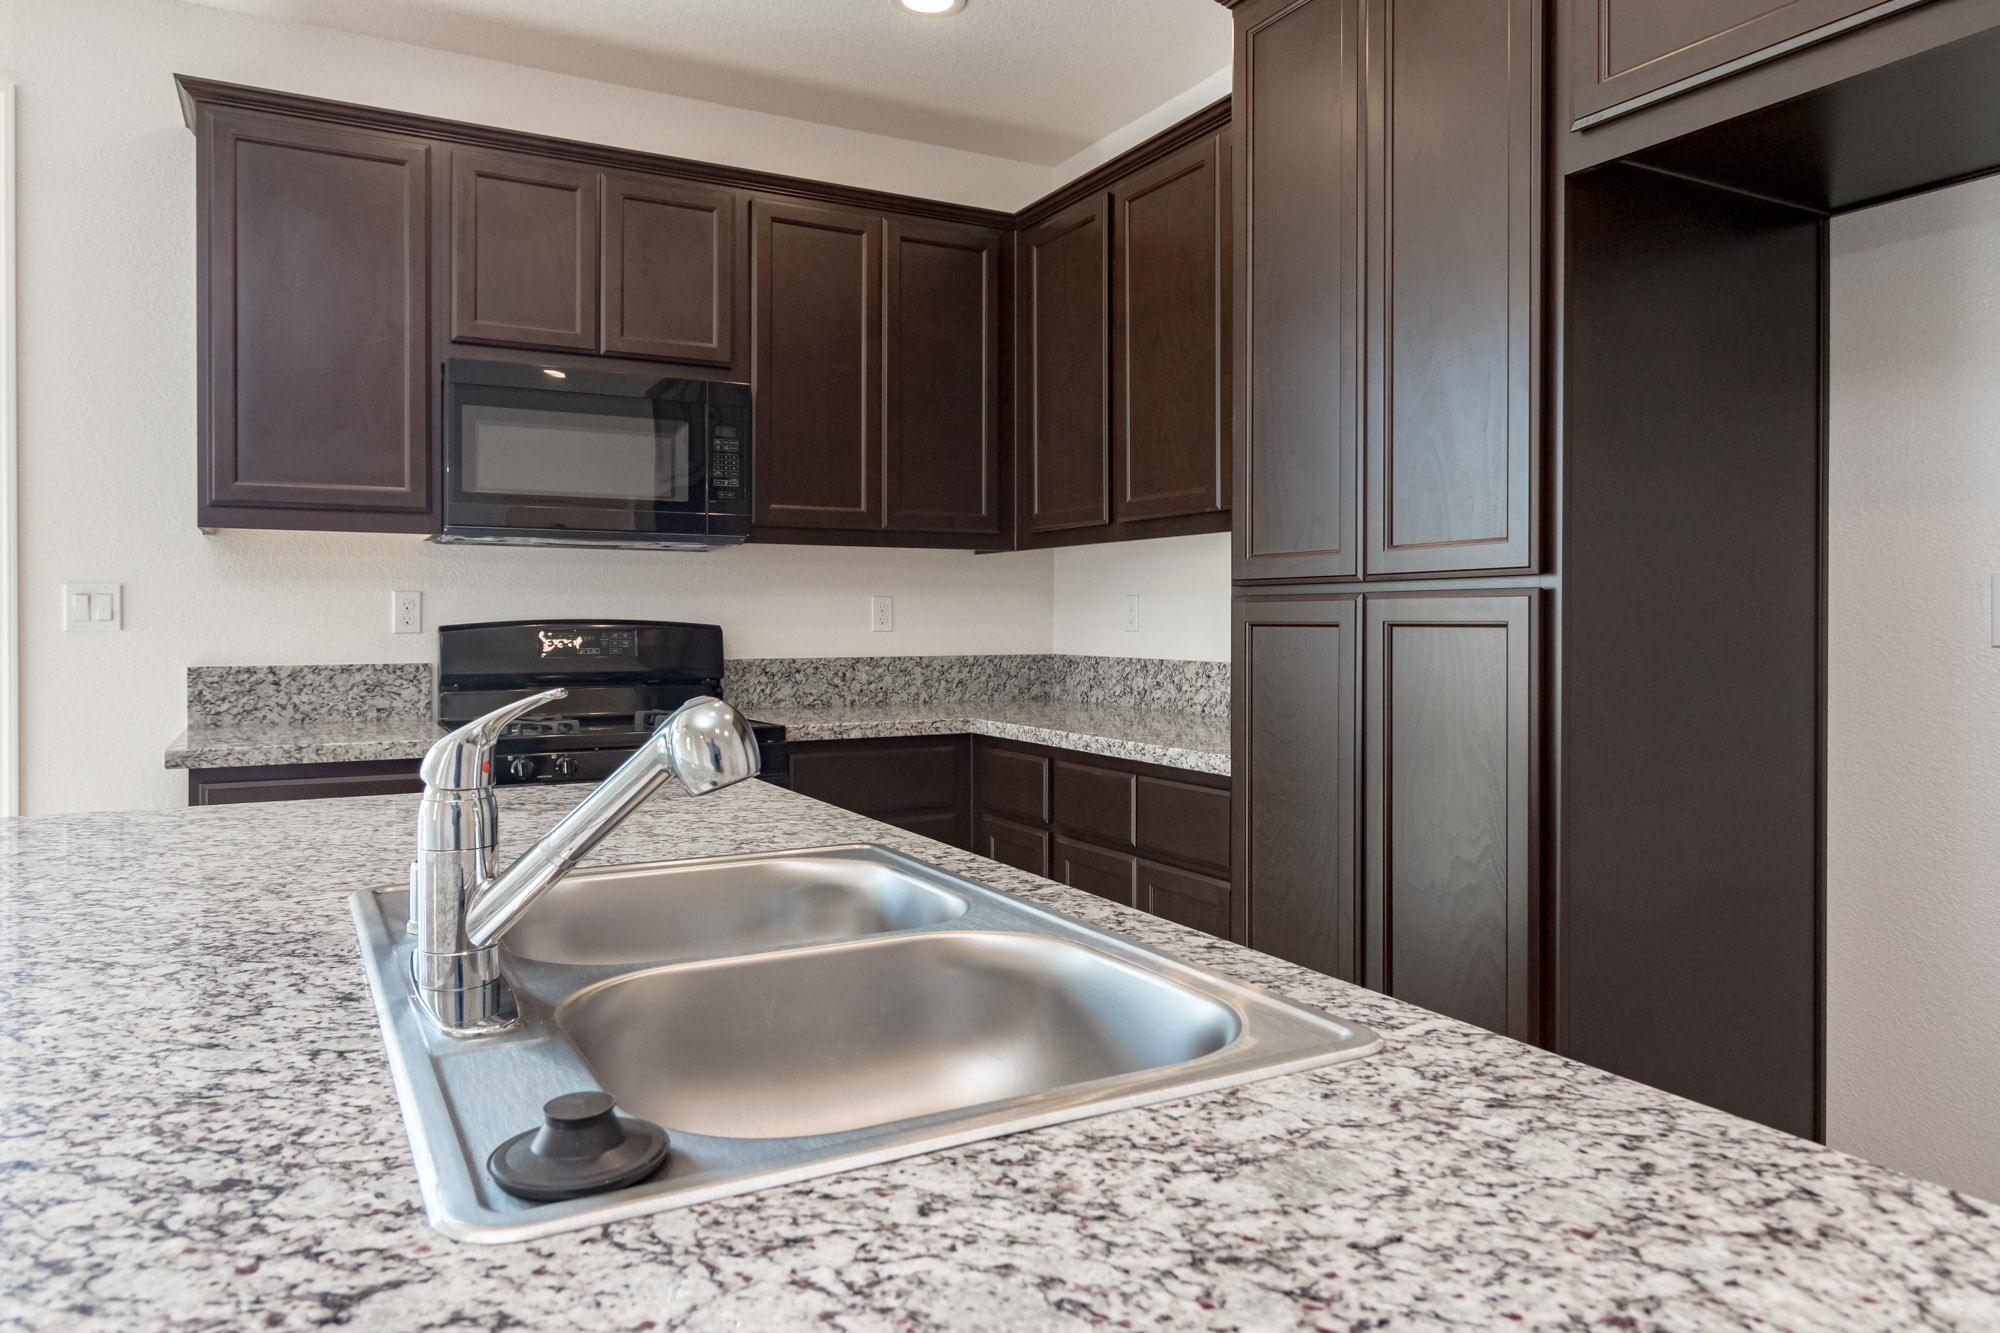 Kitchen featured in the Beechwood By Windward Pacific Builders in Merced, CA